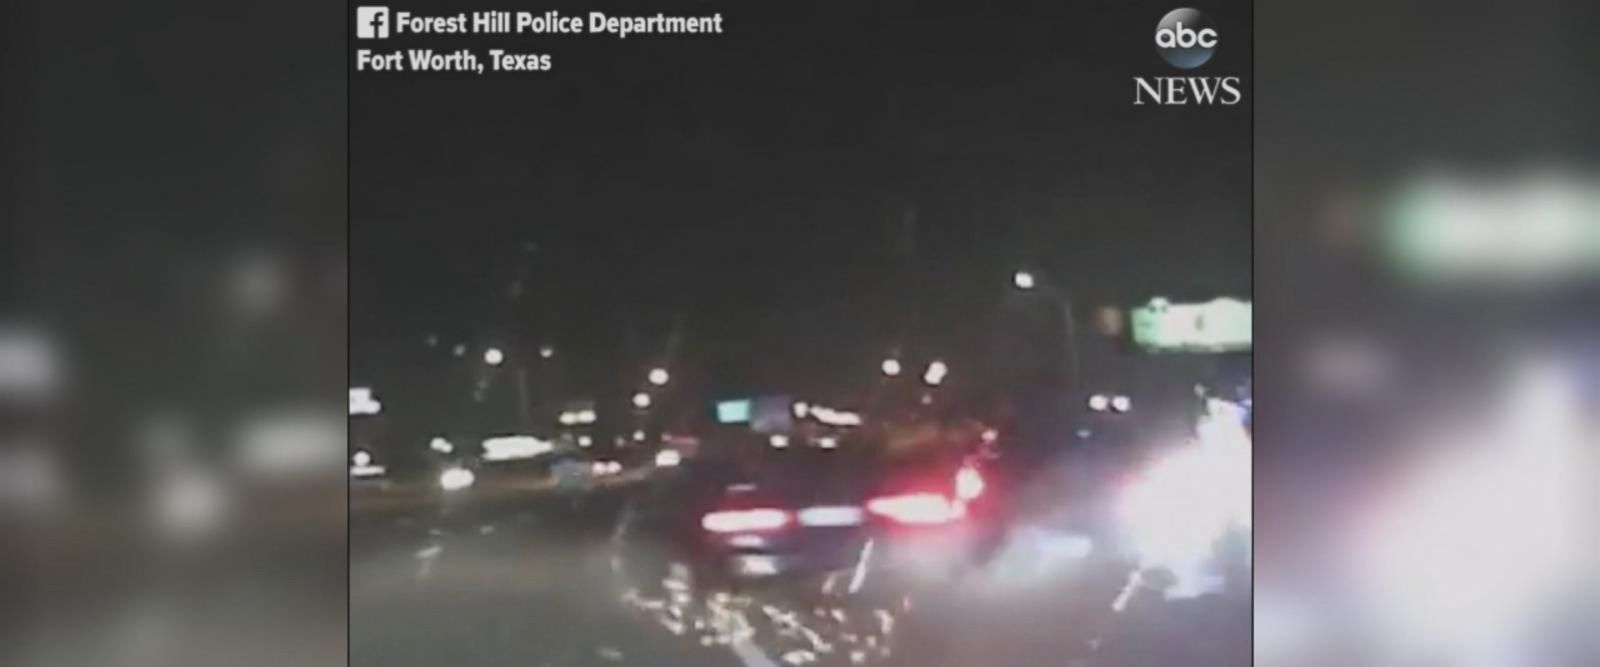 This harrowing video shows police officers in Fort Worth, Texas, narrowly escaping serious injury when an alleged drunk driver nearly crashed into them at top speed.